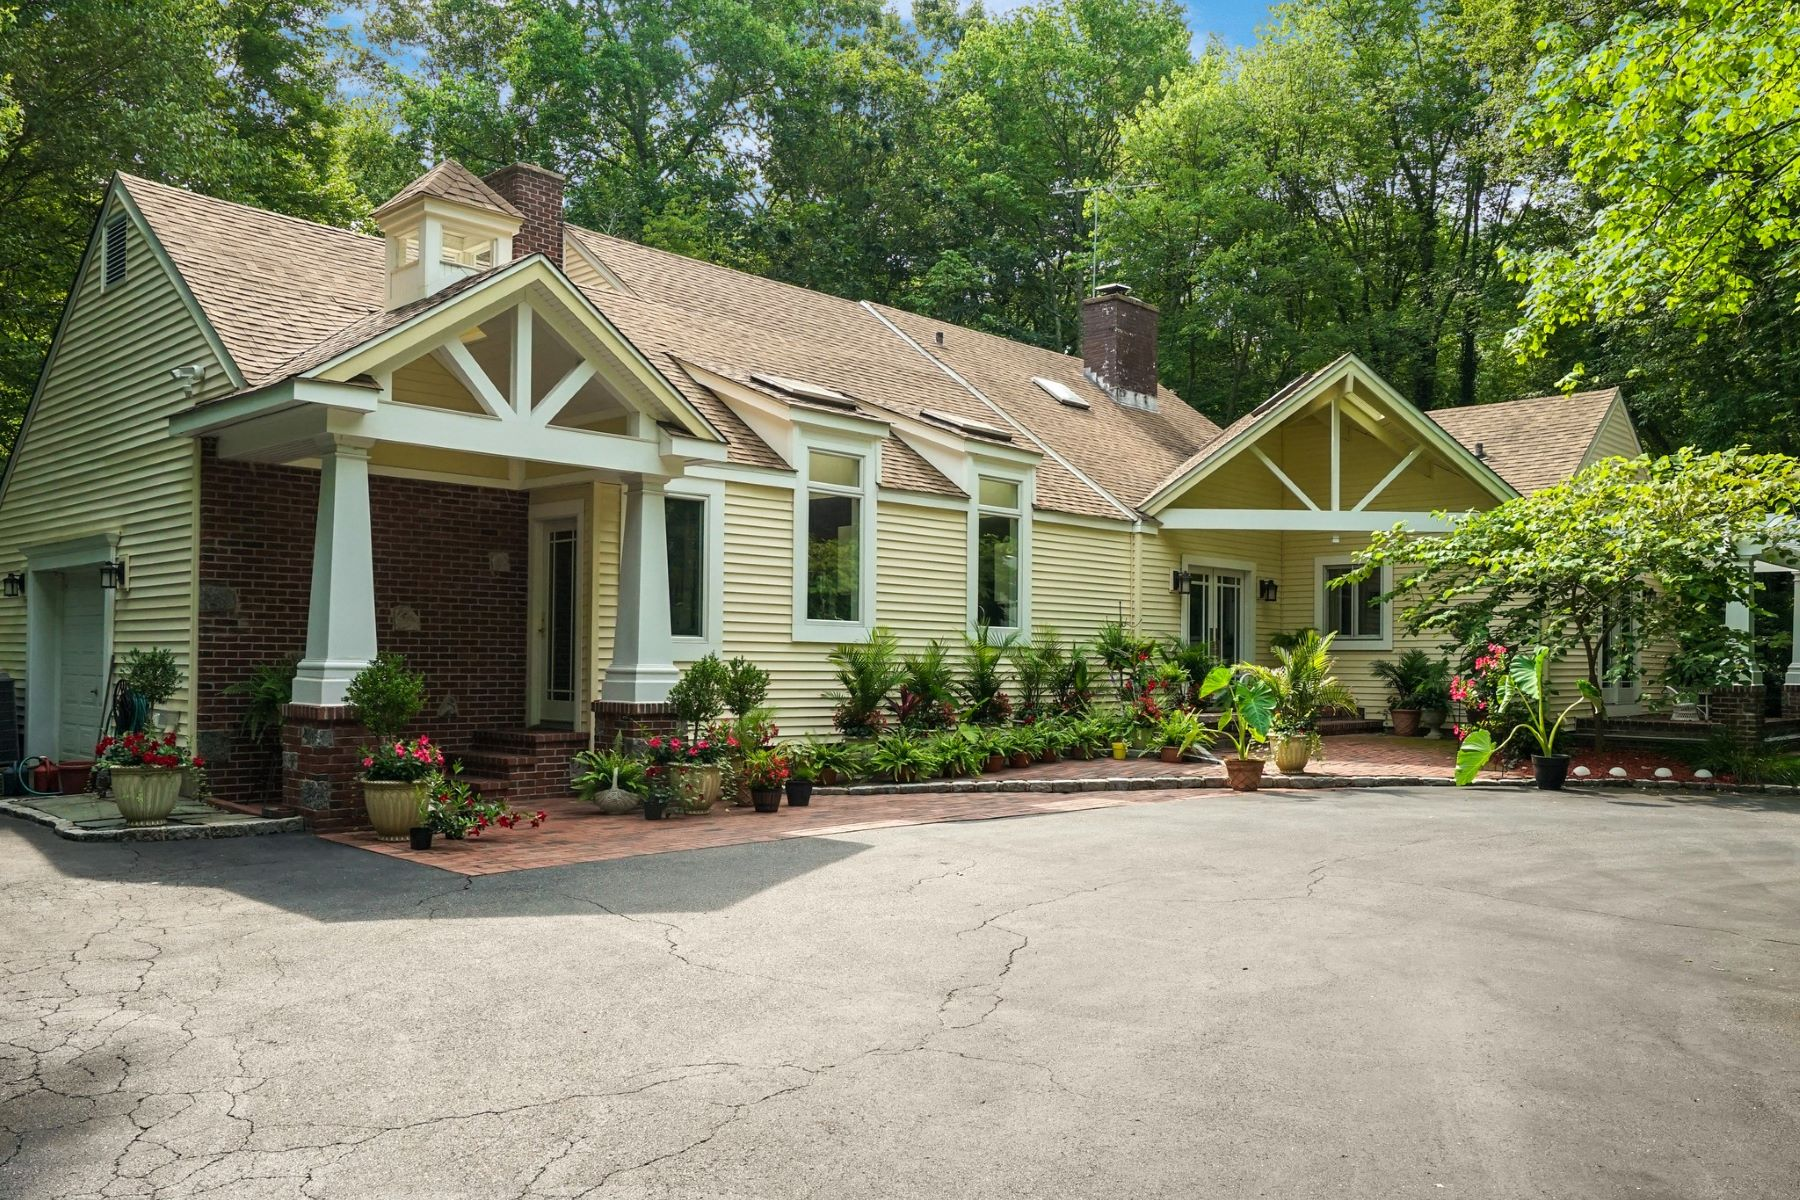 Single Family Homes for Sale at Oyster Bay Cove 6 Tiffany Rd Oyster Bay Cove, New York 11771 United States